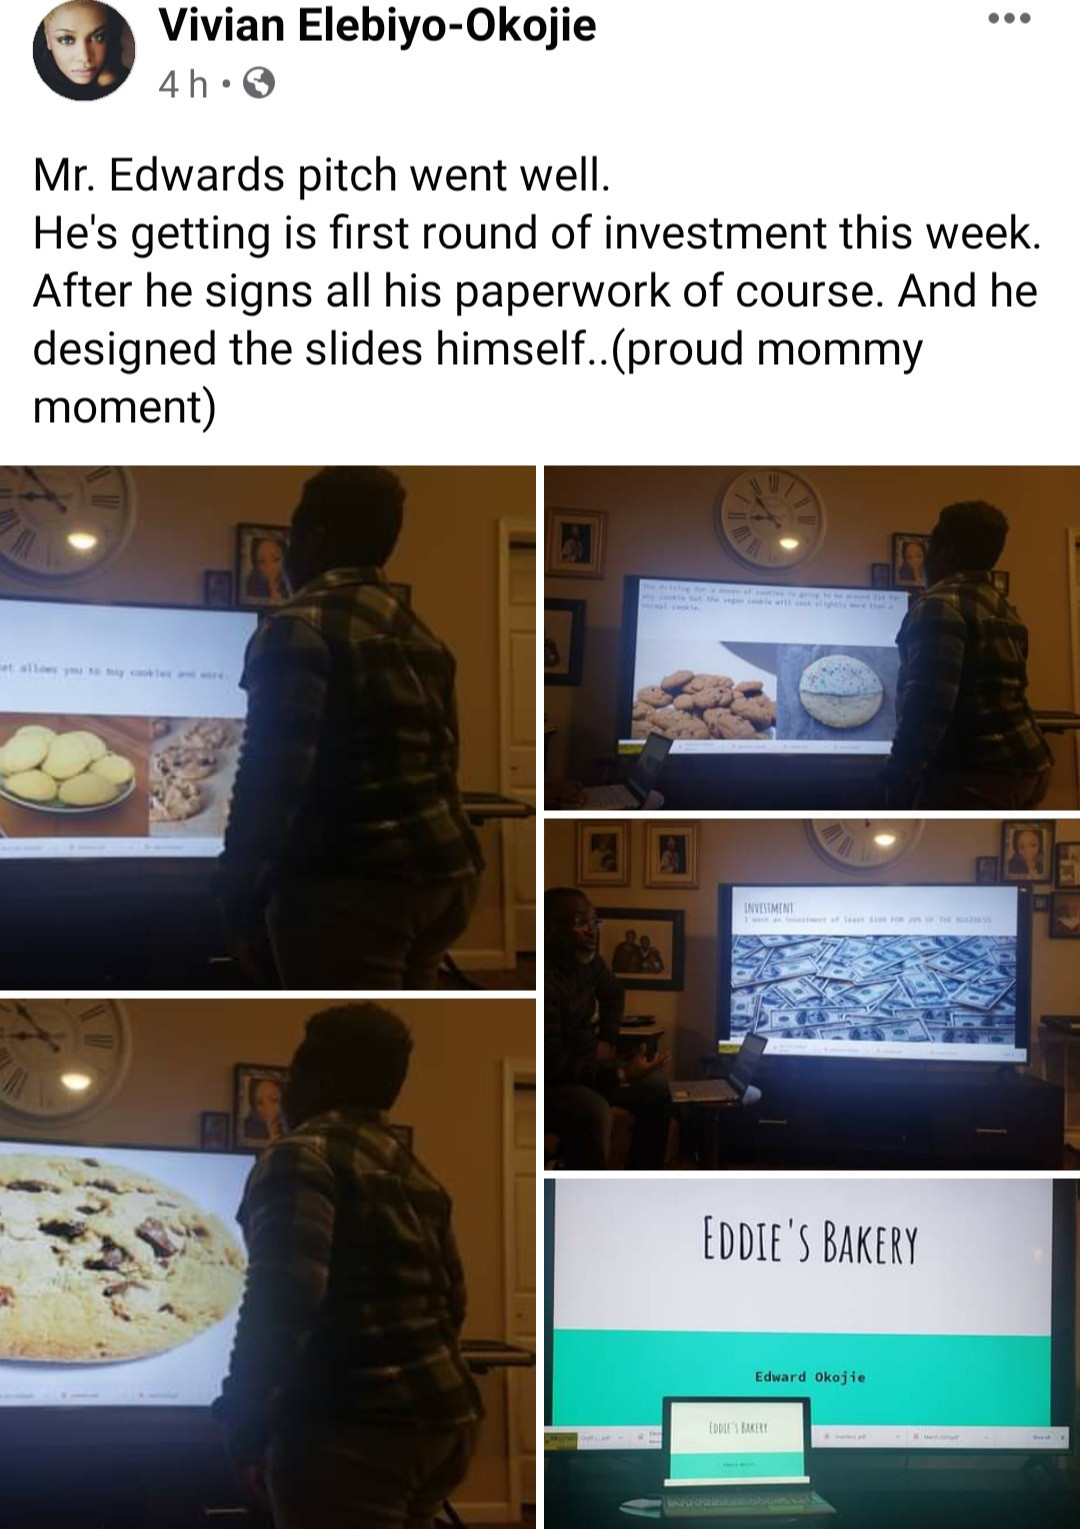 Nigerian mum makes her son, 9, draft a proposal and pitch his business idea after he asked for money to start a bakery business